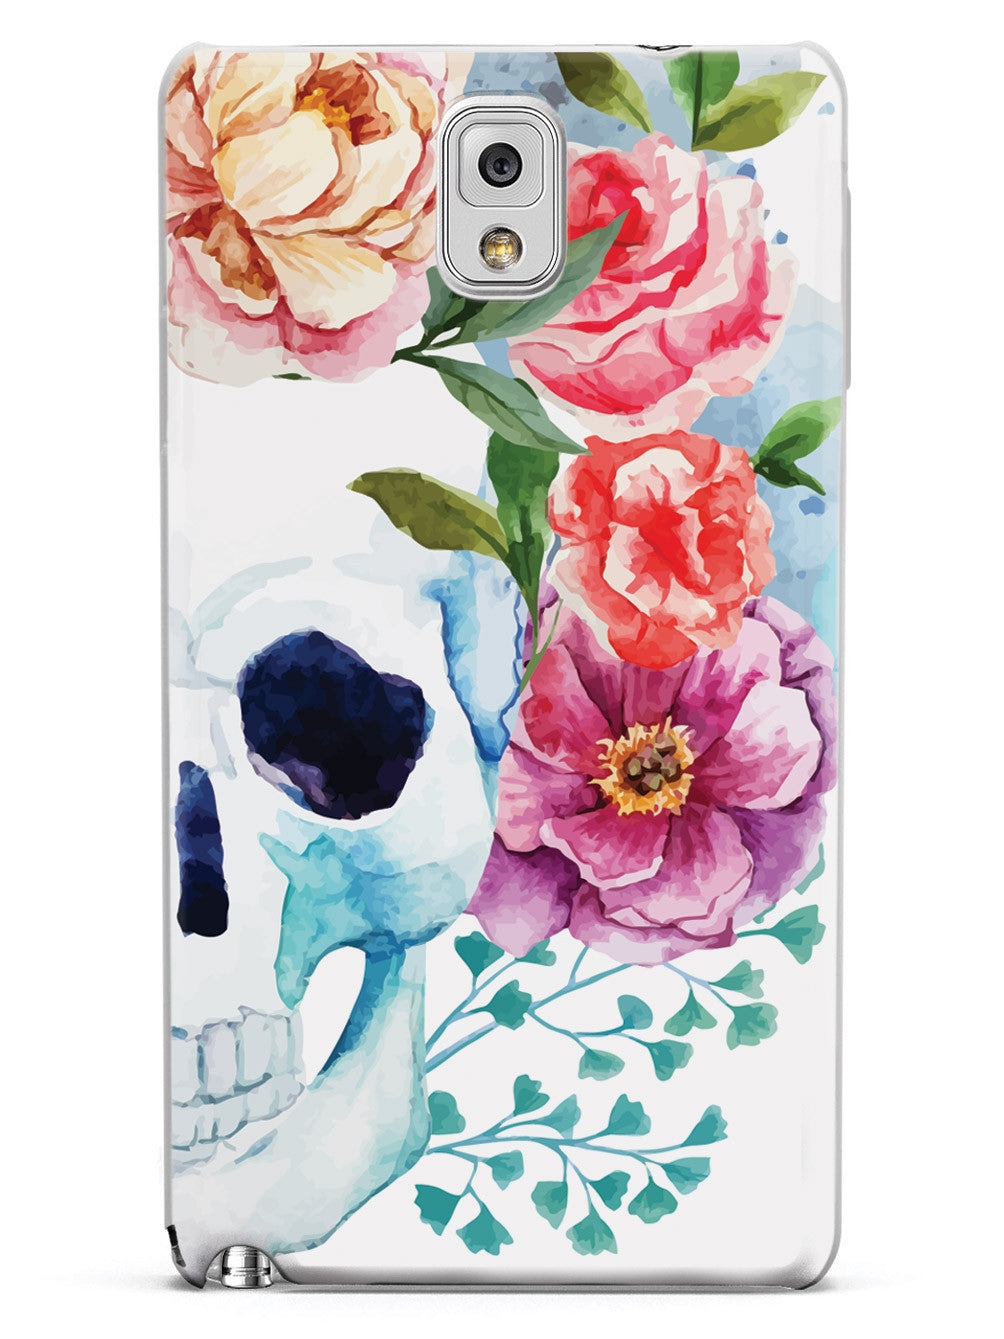 Watercolor Skull and Flowers Case